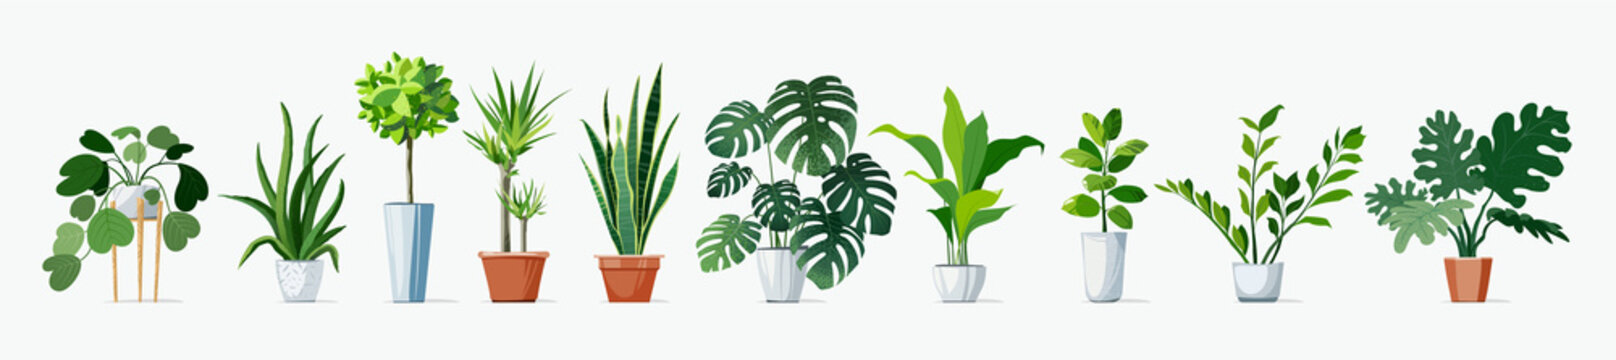 Home Plants set, in pots. Exotic Monstera and other decoration green planting